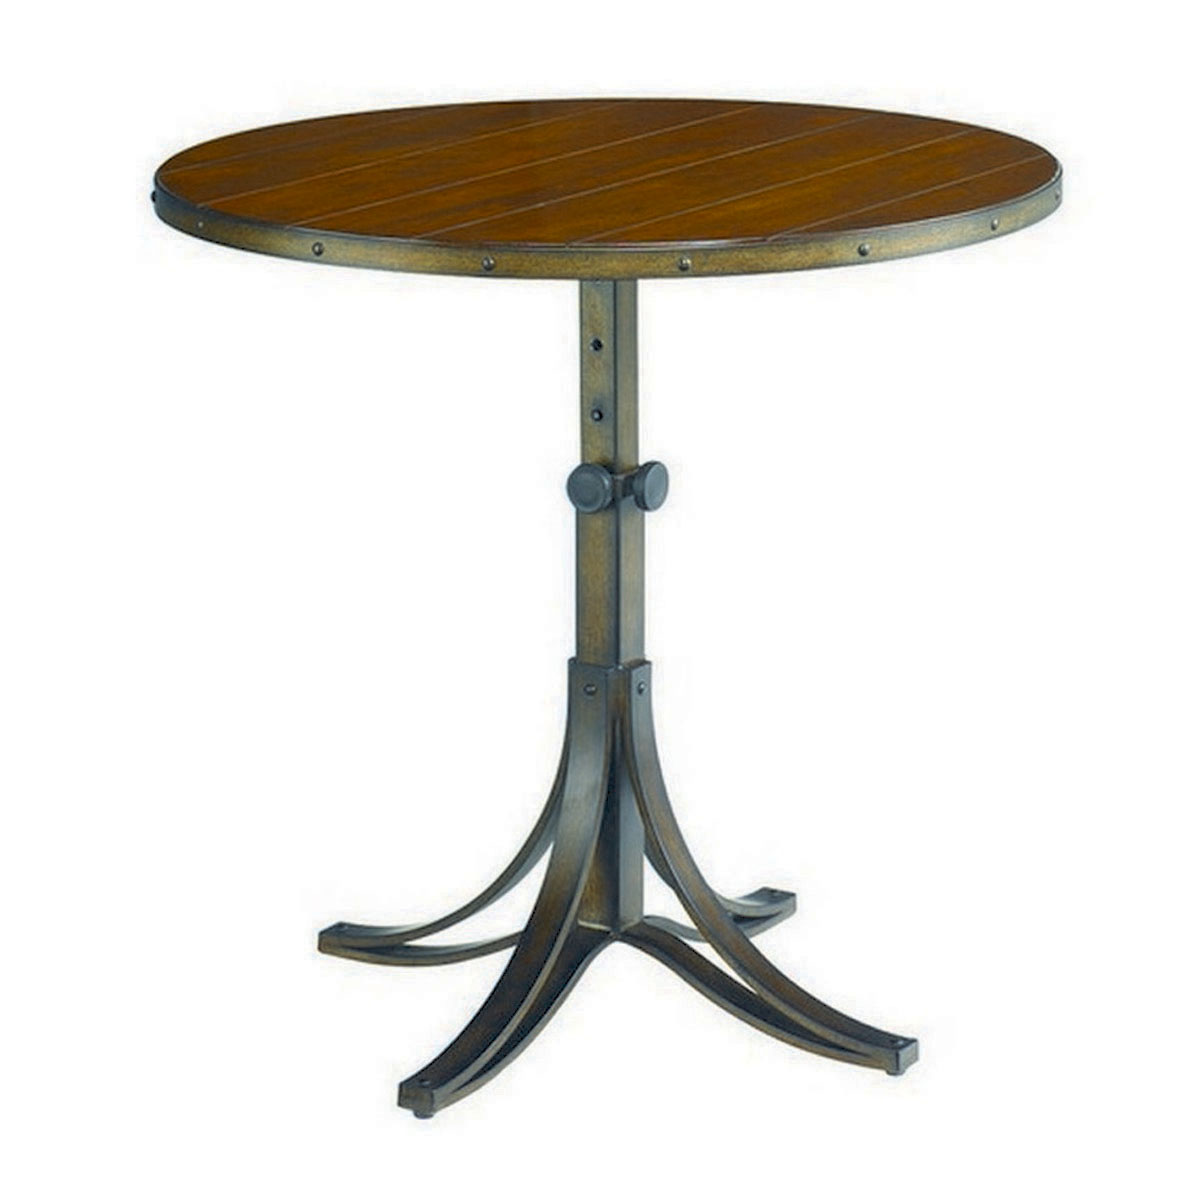 Image of: Mercantile Round Adjustable Accent Table